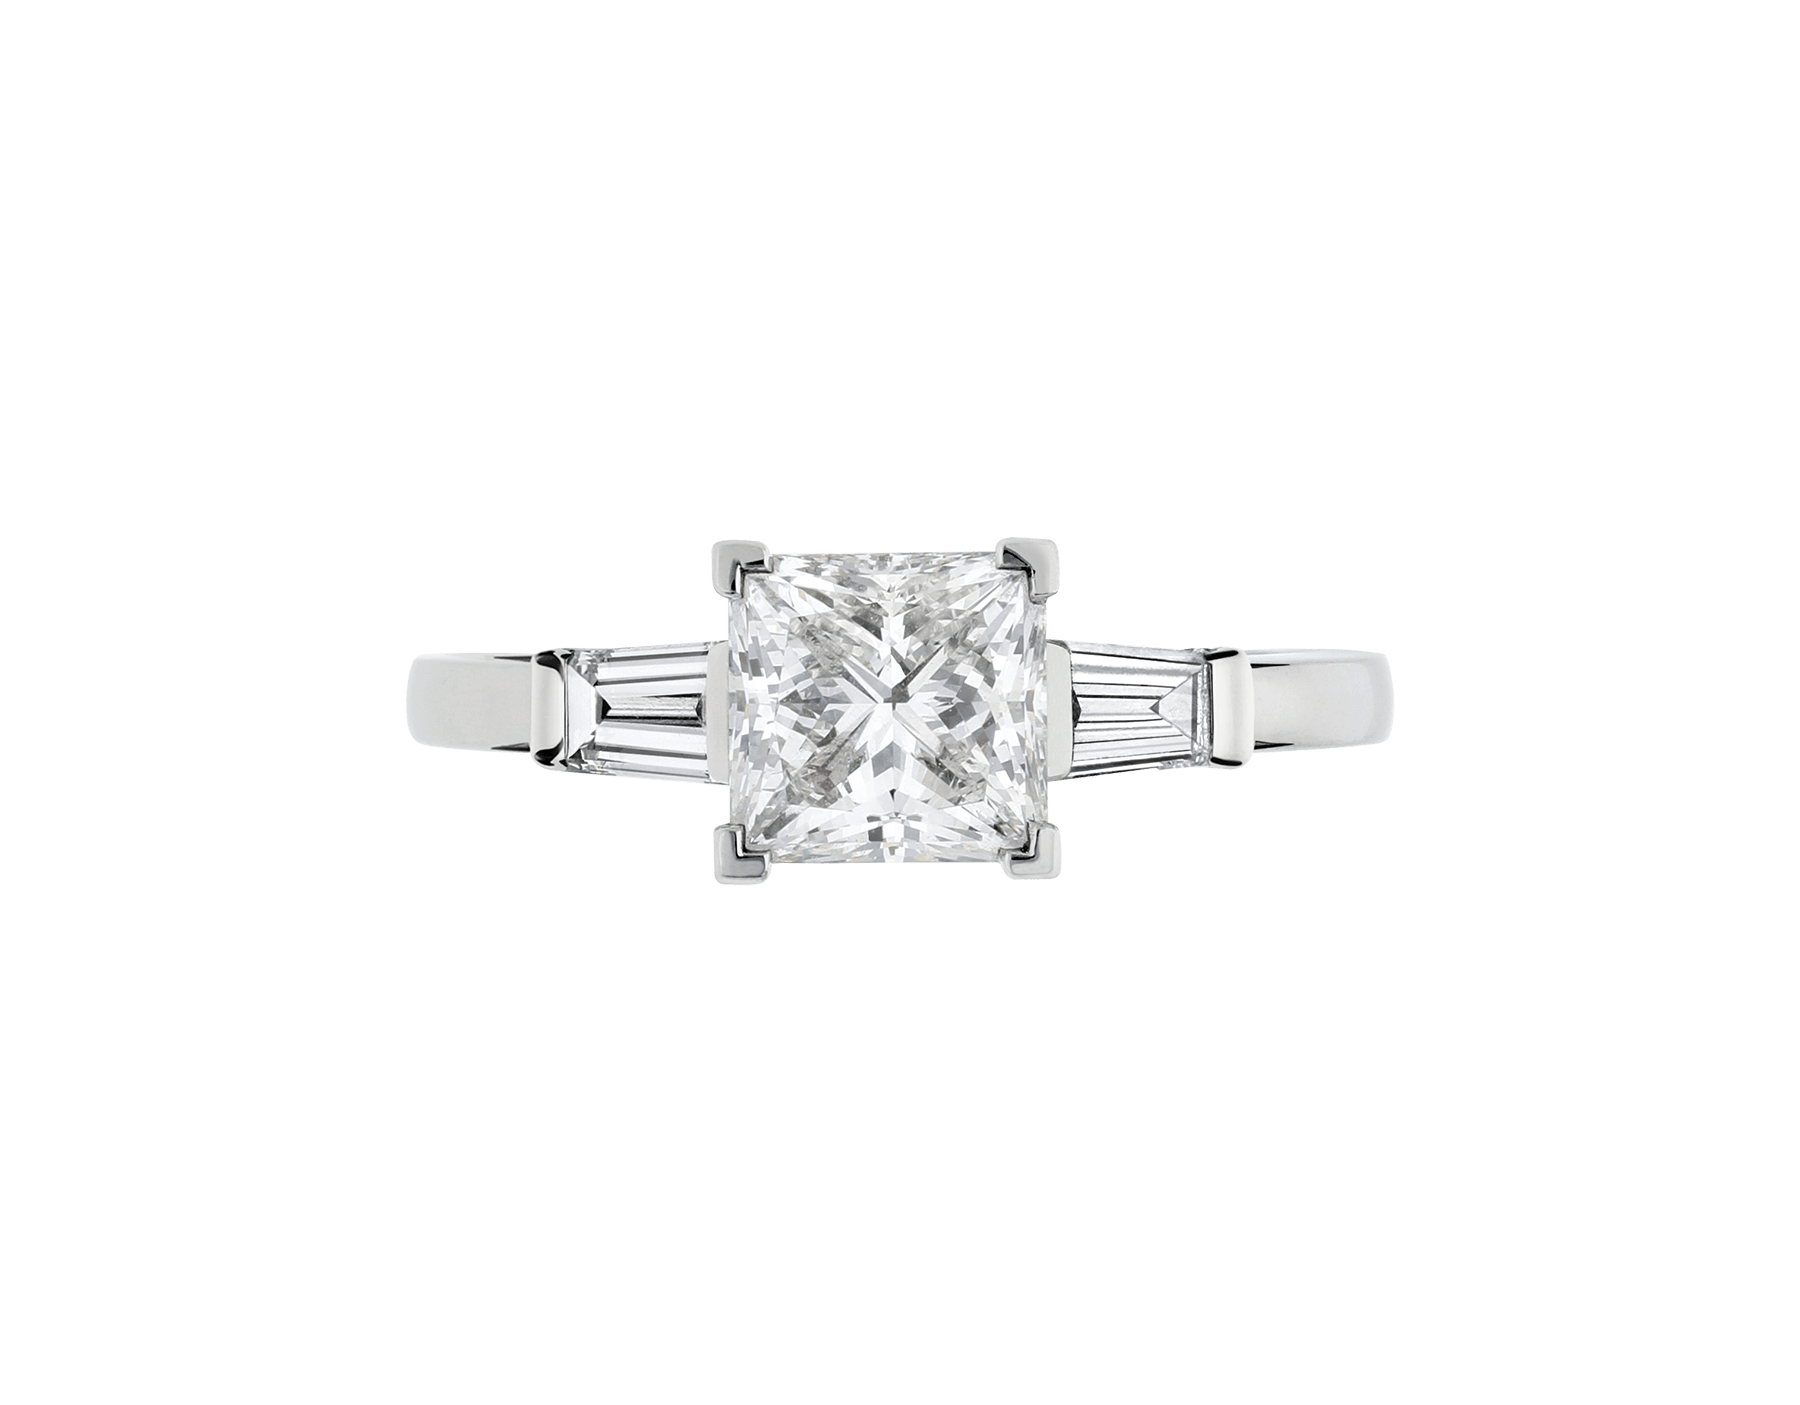 Griffe solitaire ring in platinum with princess cut diamond and two side diamonds. Available in 1 ct. A classic setting that allows the beauty and the pureness of the solitaire diamond to assert itself. 338560 image 4